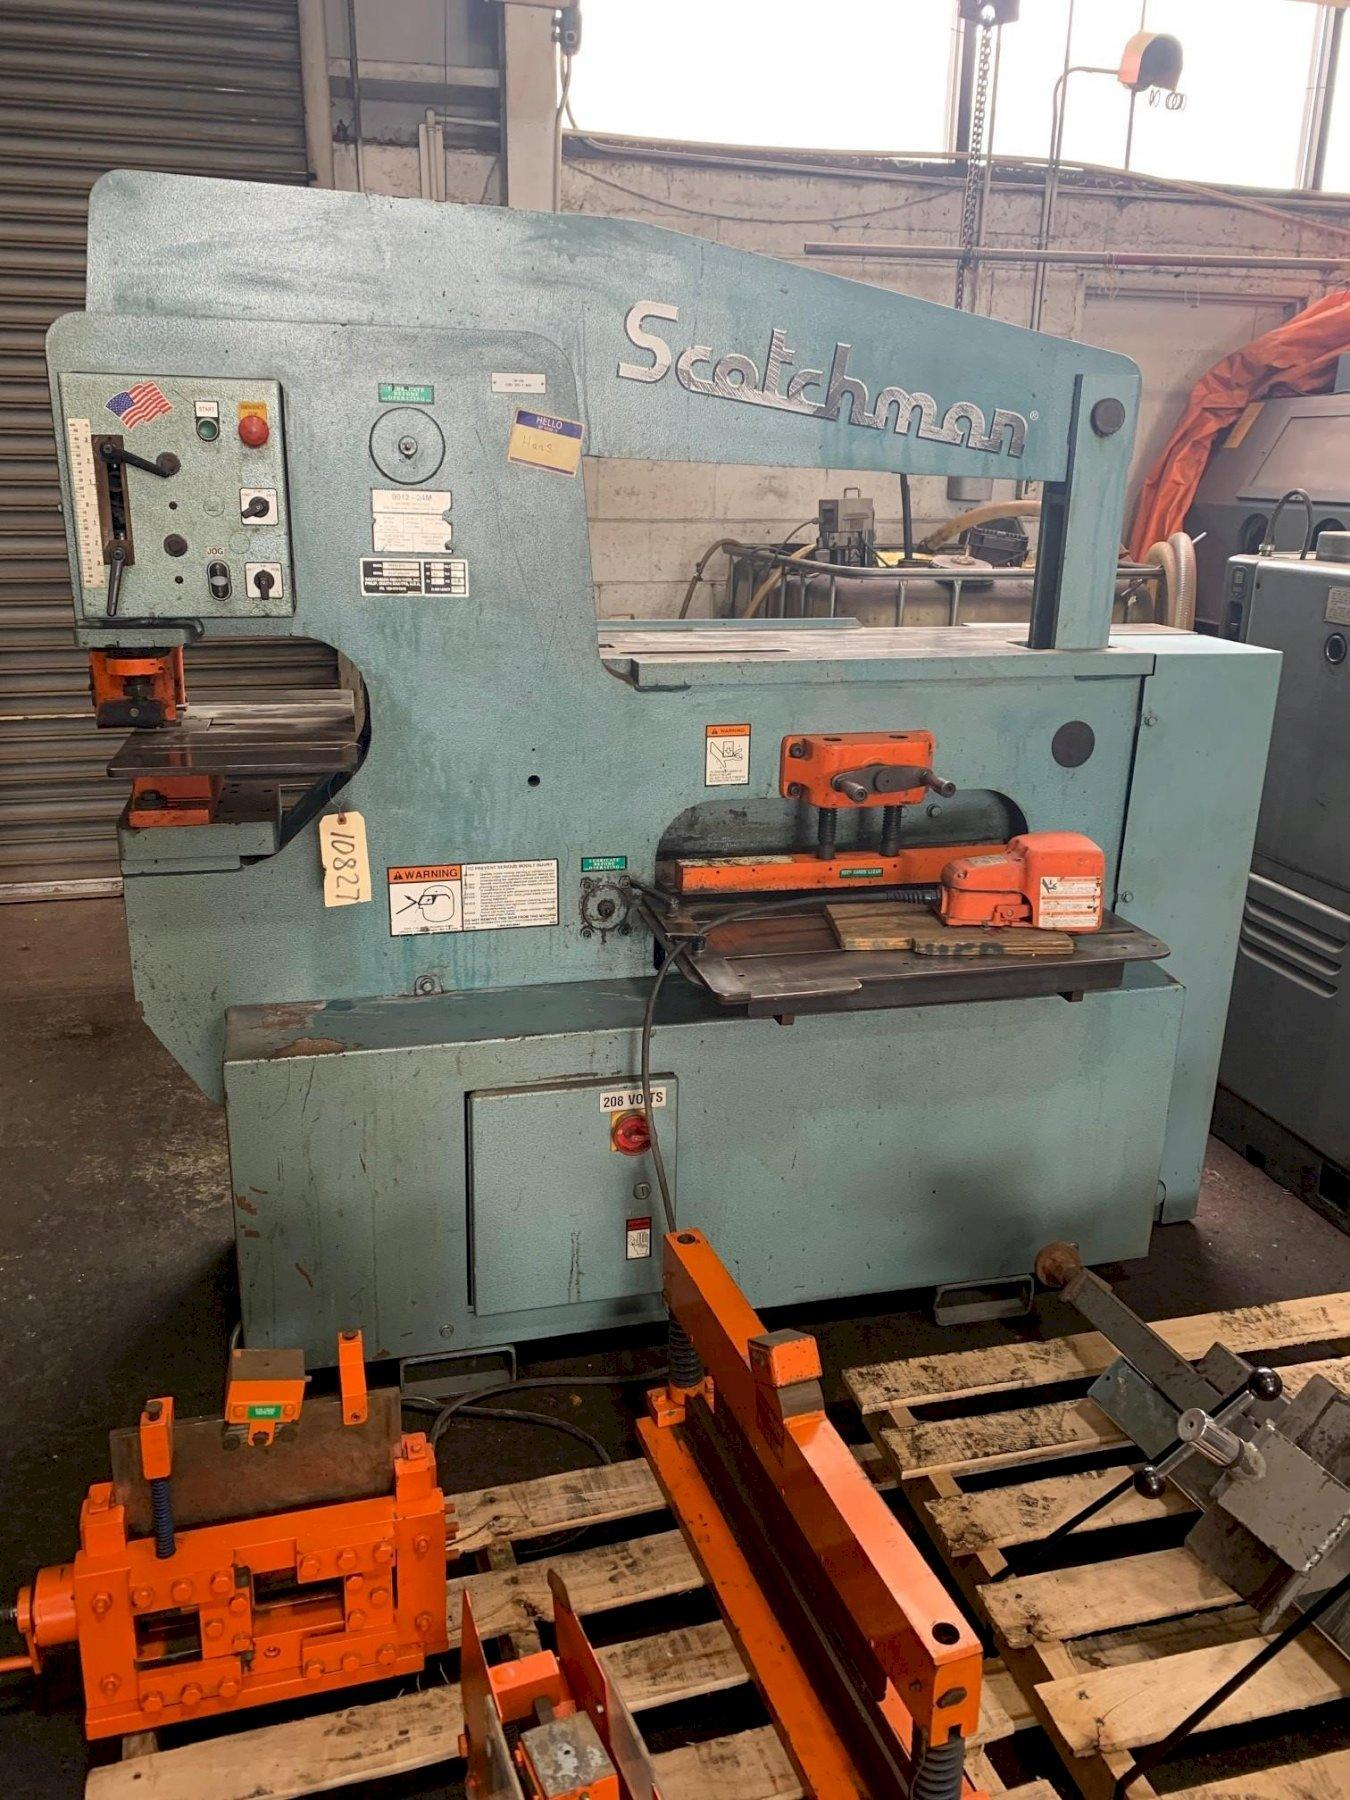 USED SCOTCHMAN 90 TON HYDRAULIC IRONWORKER MODEL 9012-24M, Year 2007, Stock #10827